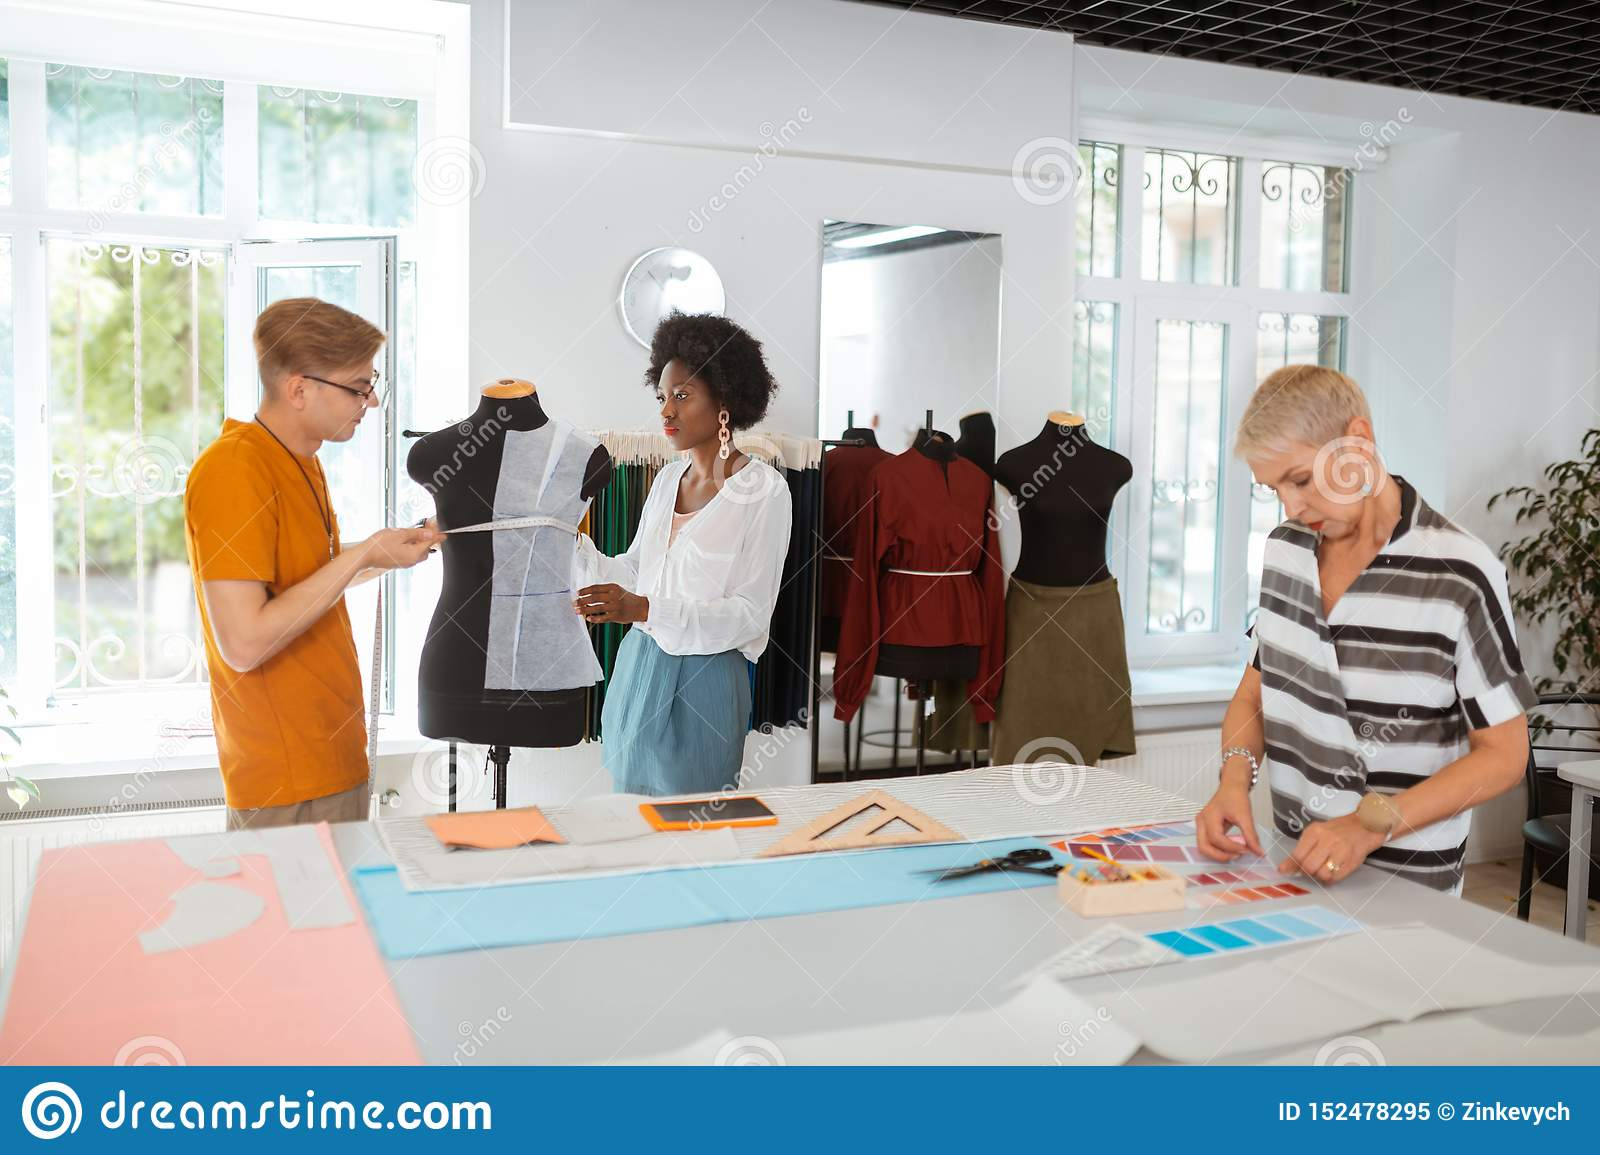 Young designers taking measurements on the tailor dummy